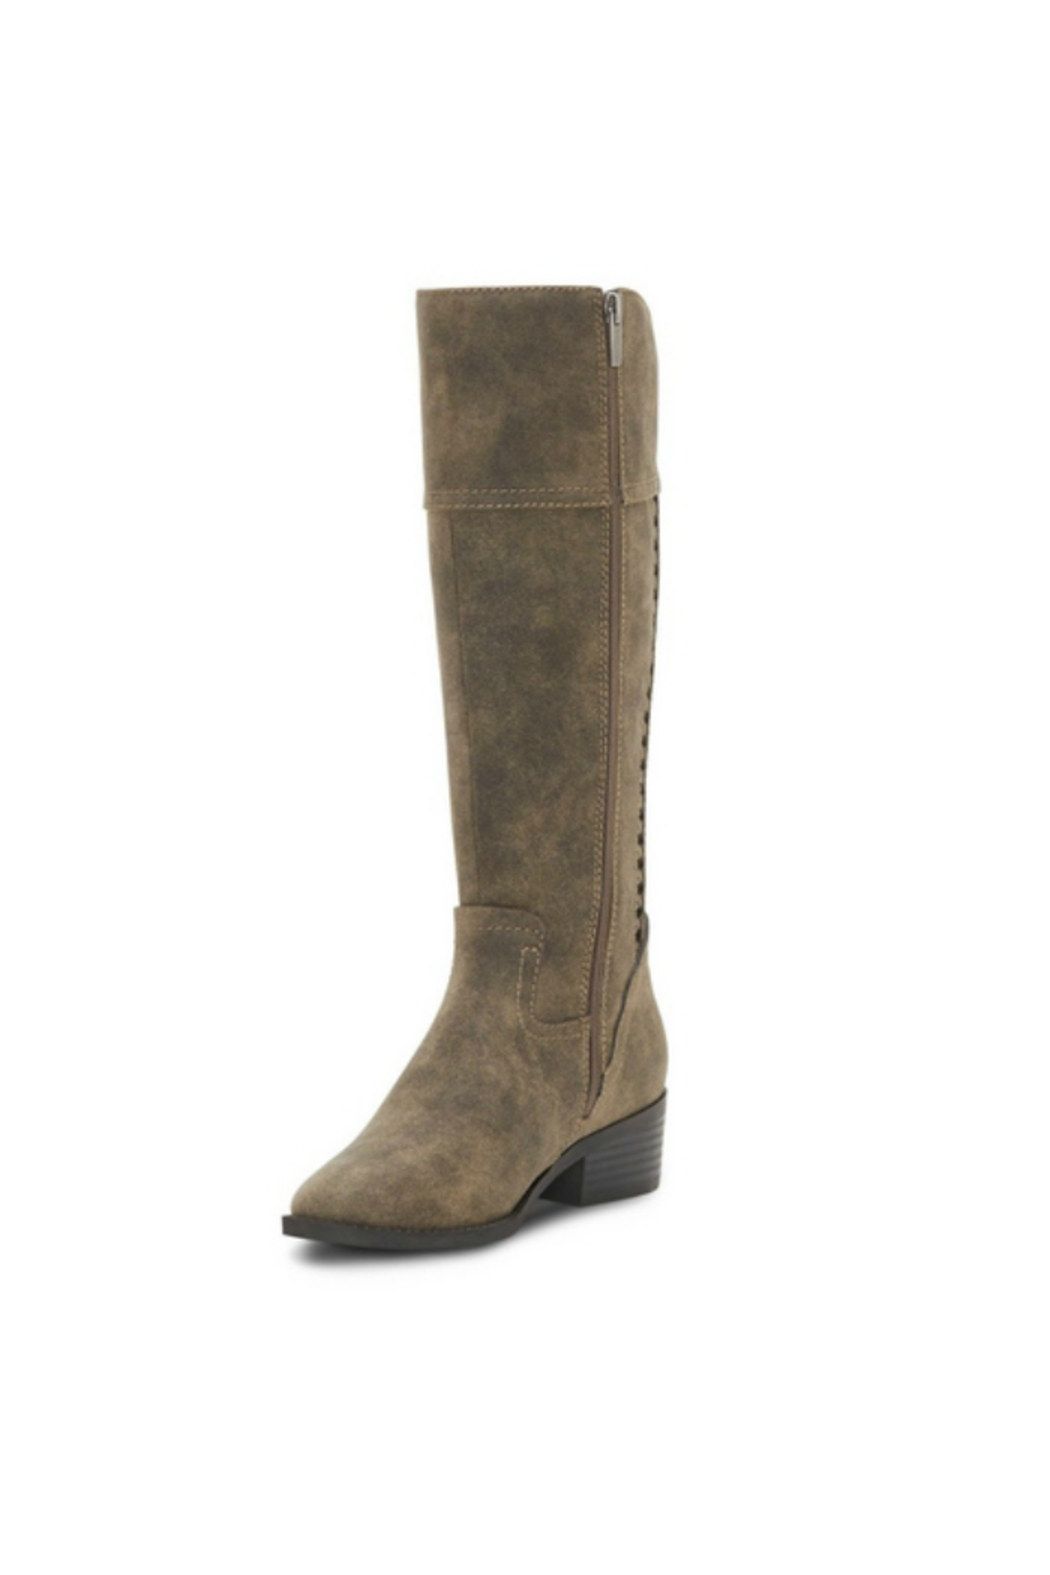 Vince Camuto Beeja - Side Cropped Image